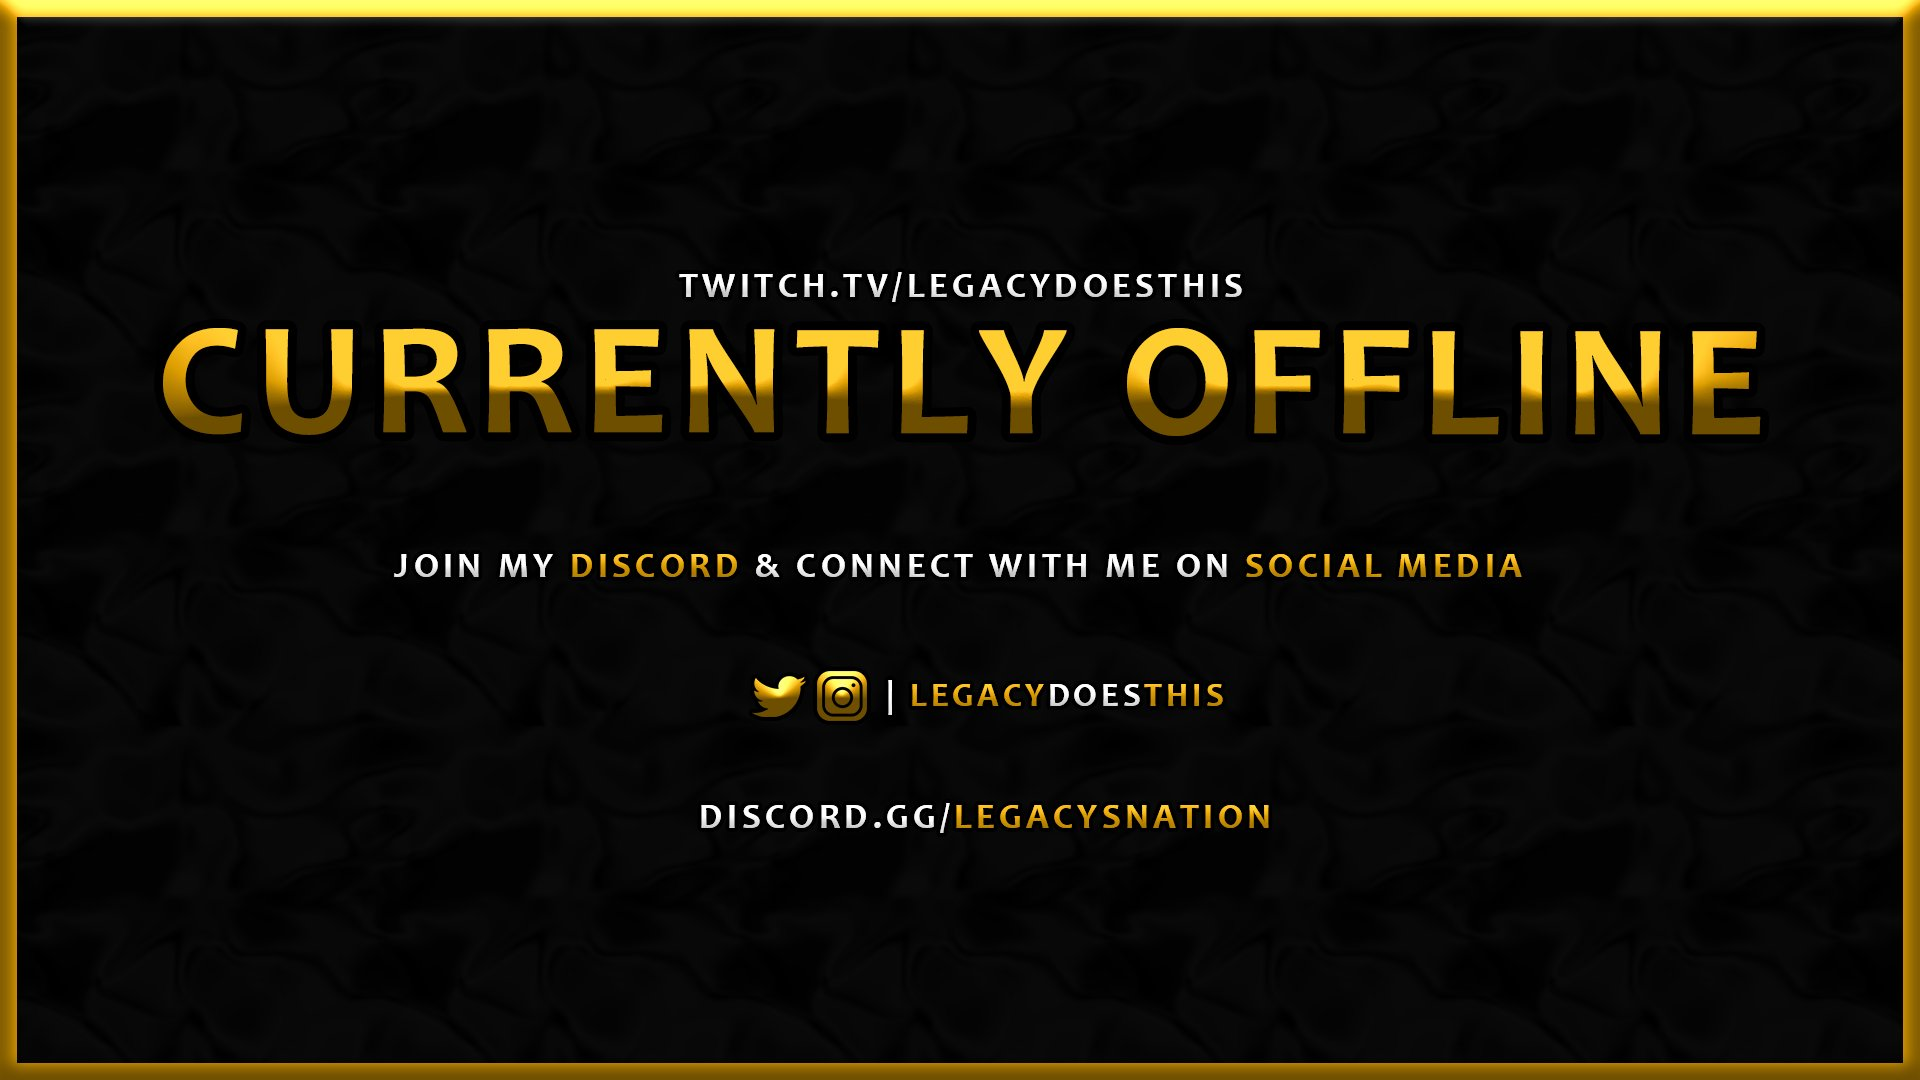 Twitch stream of LegacyDoesThis